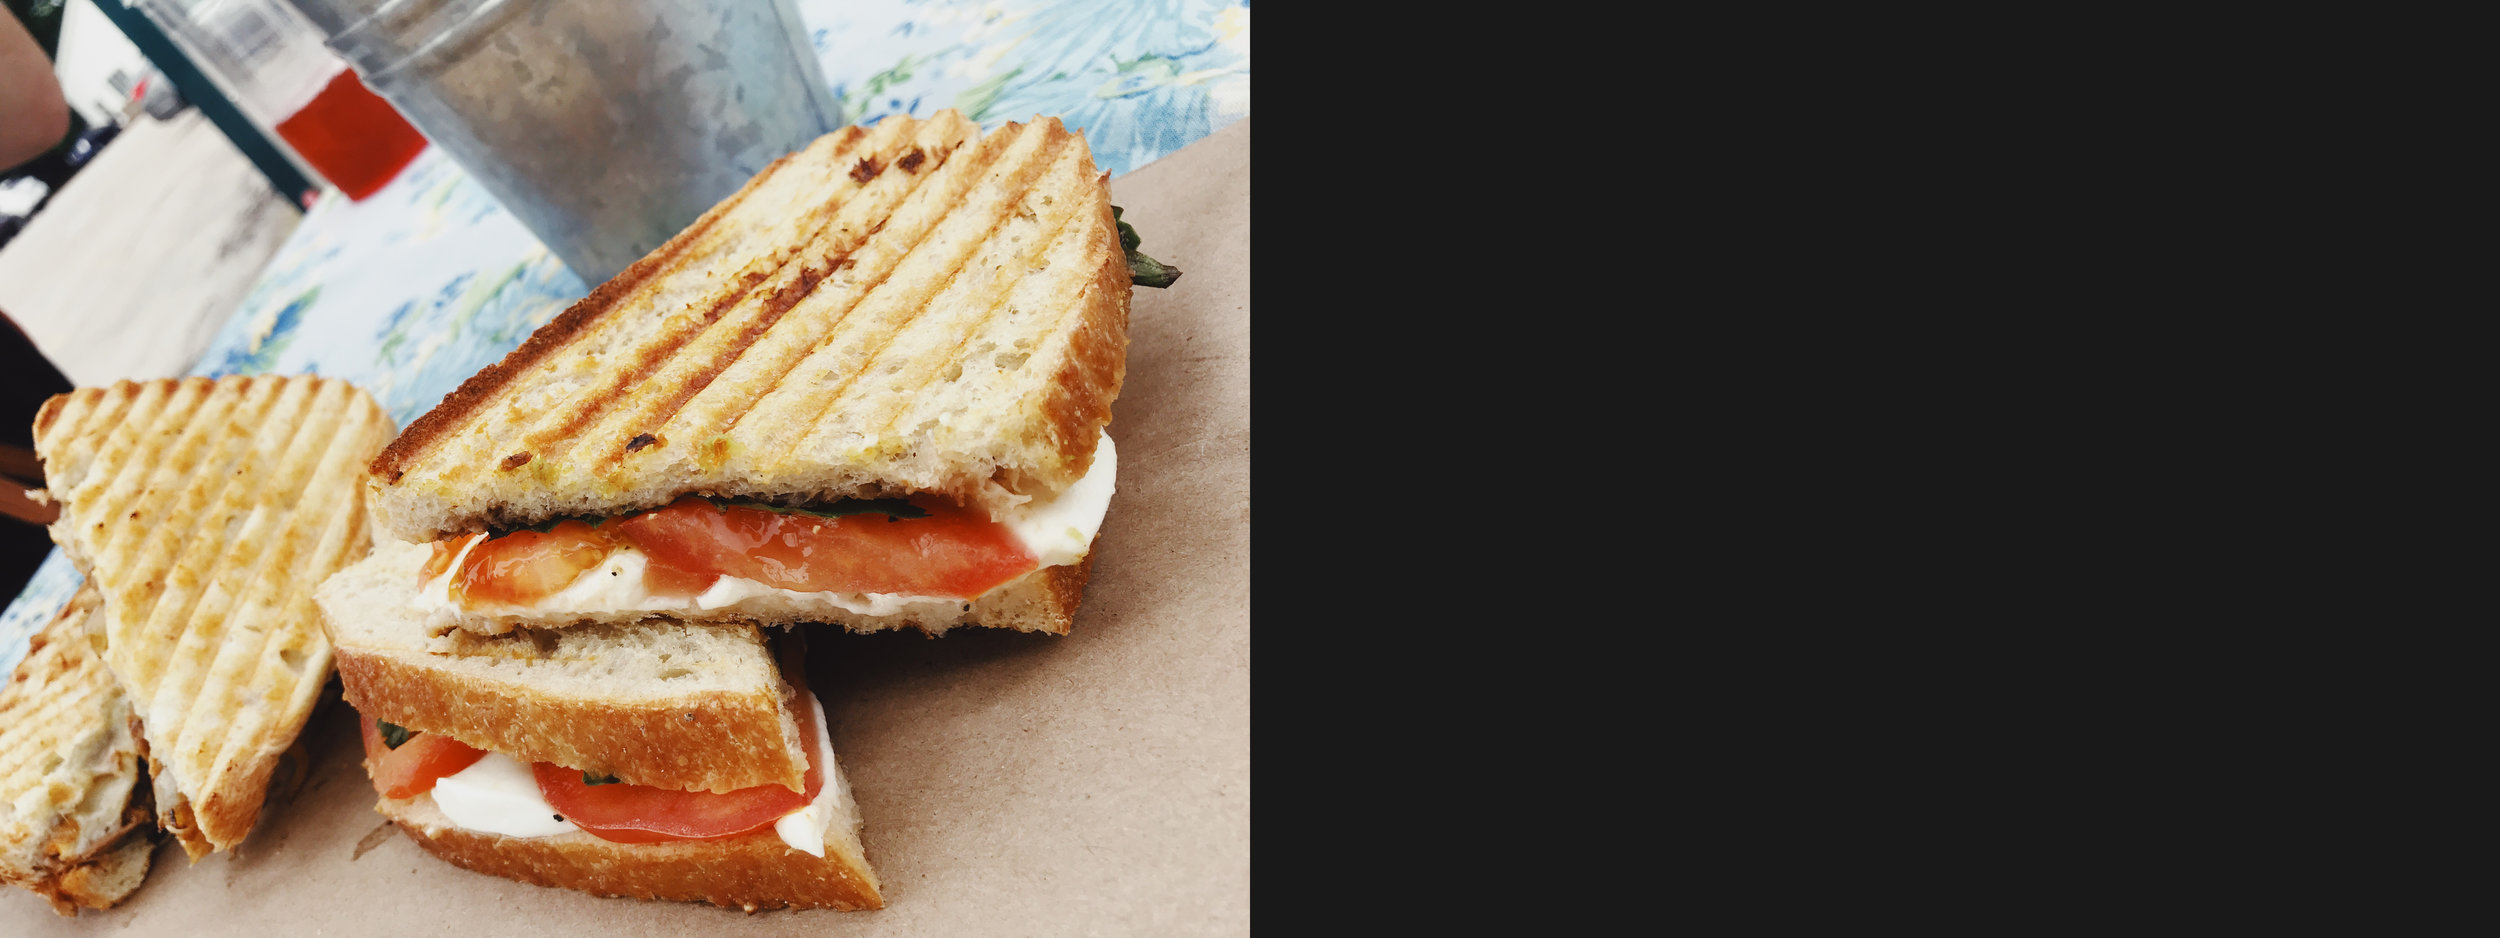 The Godmother - This is a sandwich